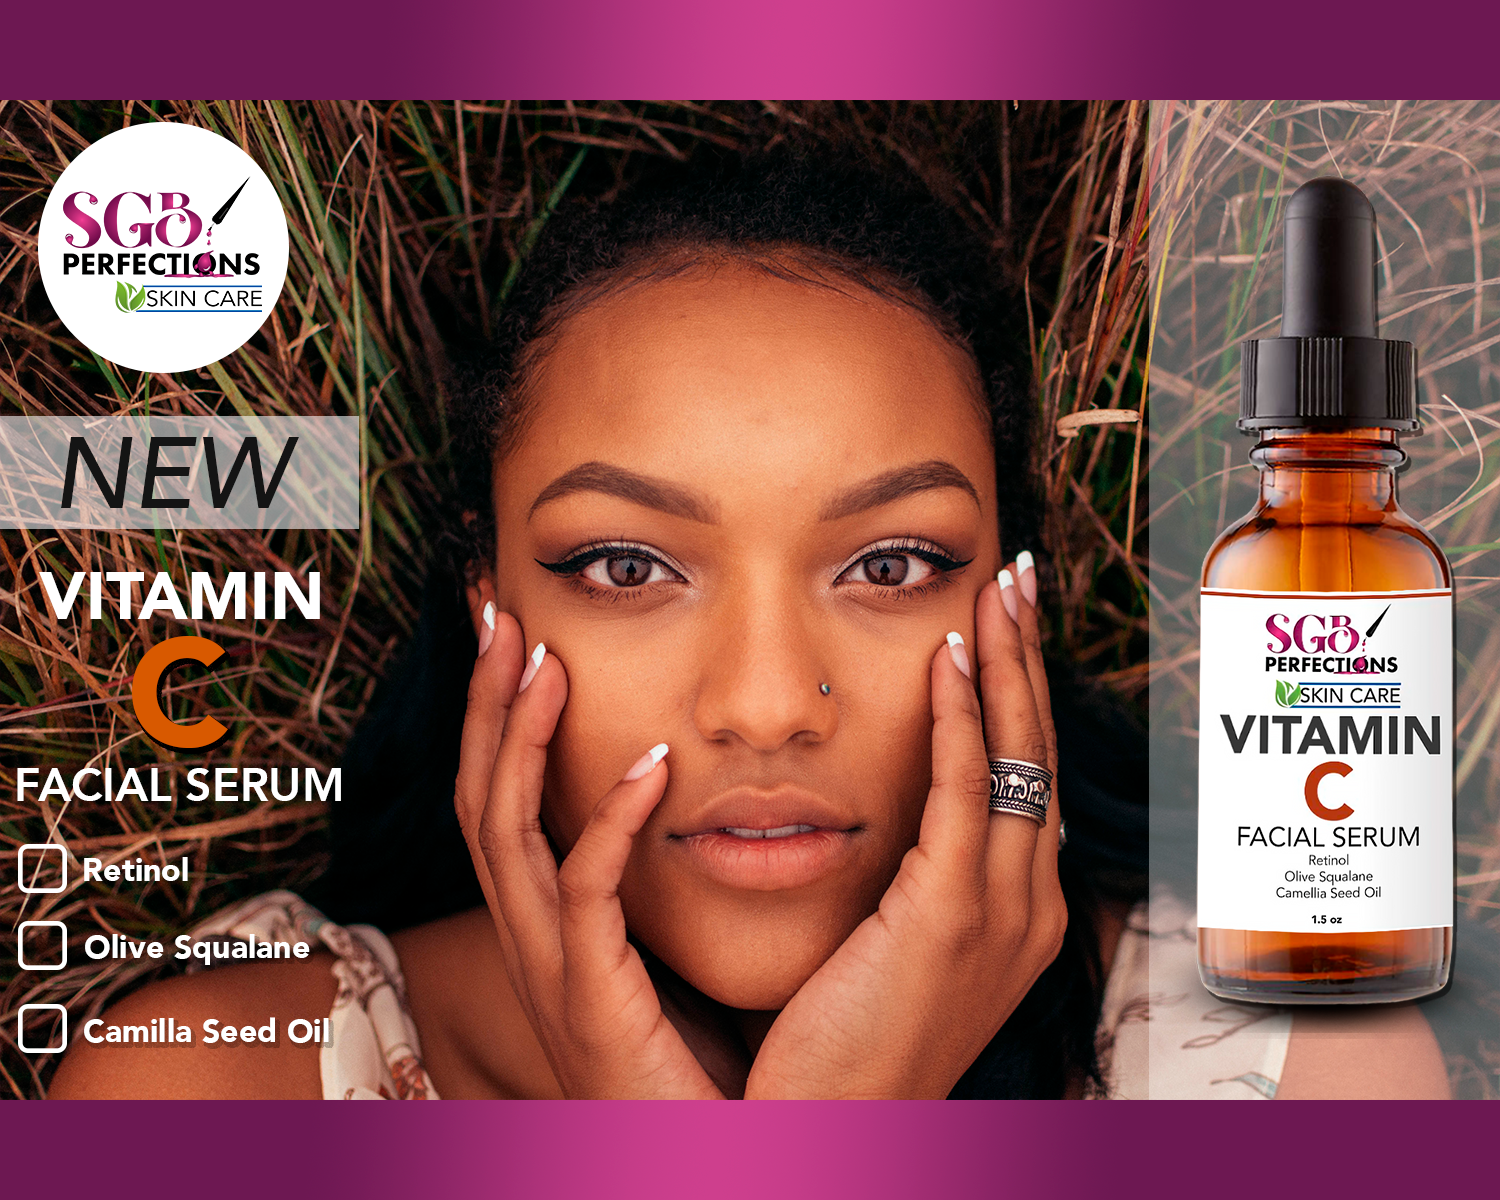 Organic Vitamin C Skincare - Our scientifically created skincare has Vitamin C, which naturally helps skin to glow, produce collagen, improves skin texture, and has anti-aging ingredients. Our Vitamin C products are integrated with other natural anti-aging, pore reduction, UV protecting, and collagen producing ingredients.